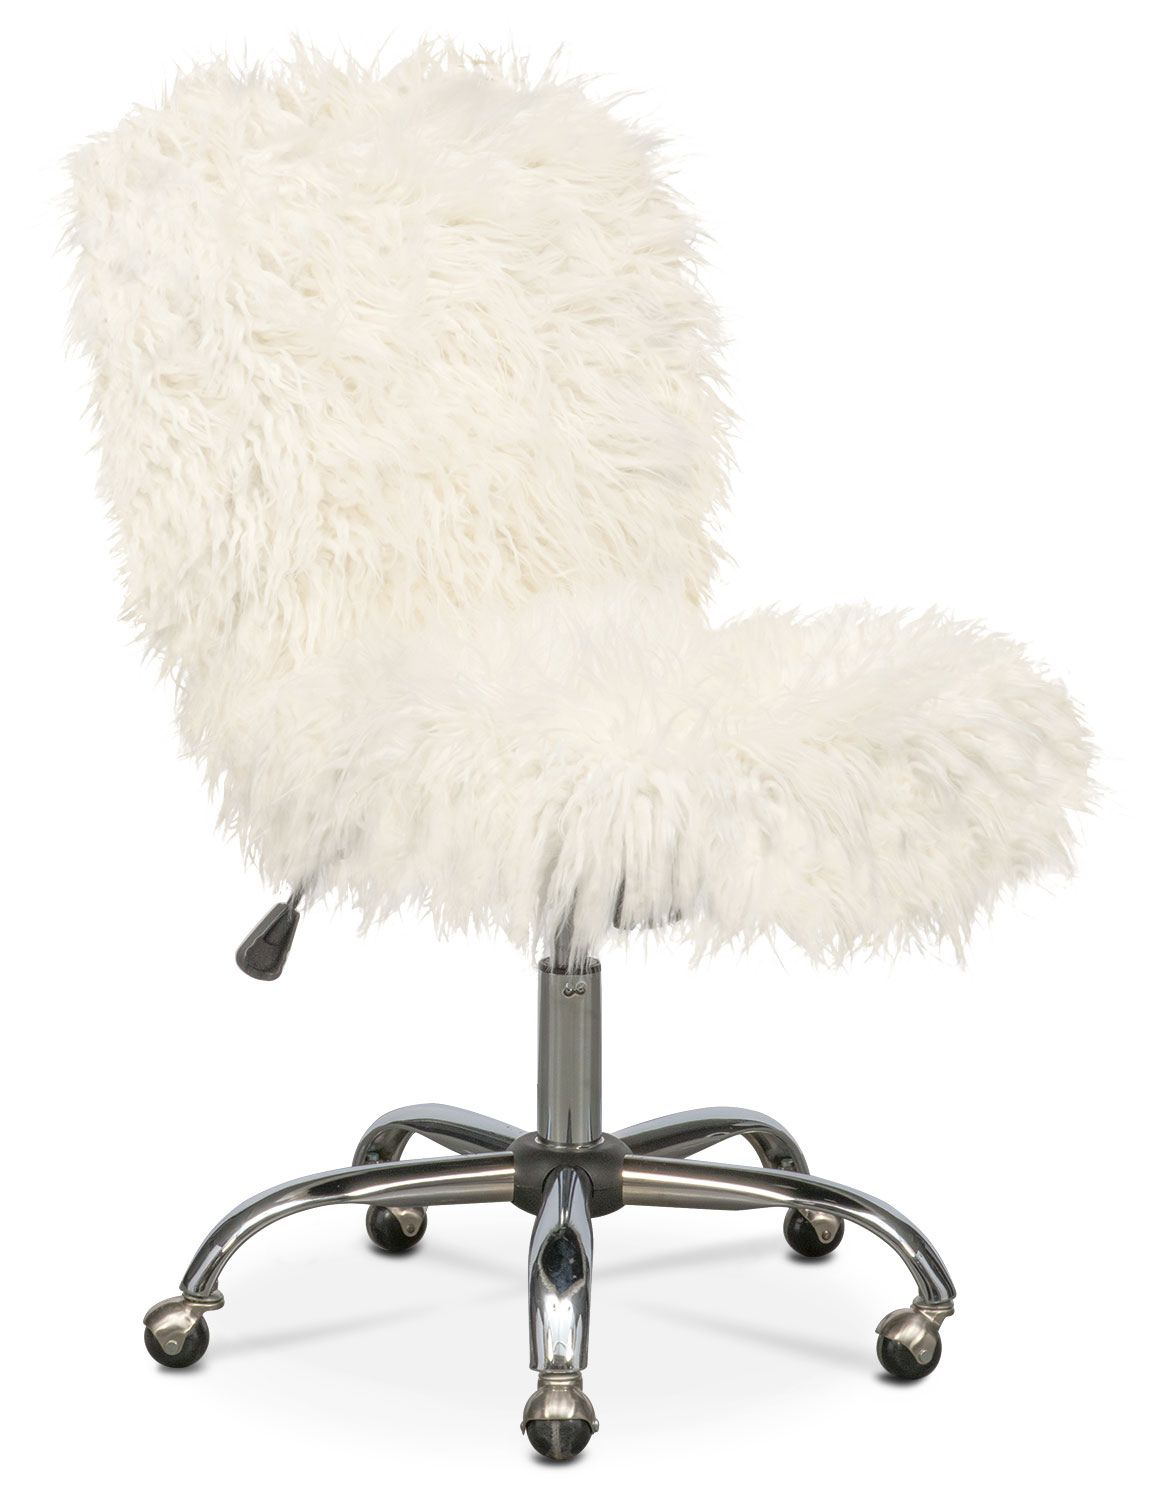 Fluffy Desk Chair Design Process Pin By Neby On Modern Home Interior Ideas Furniture White Best Office Check More At Http